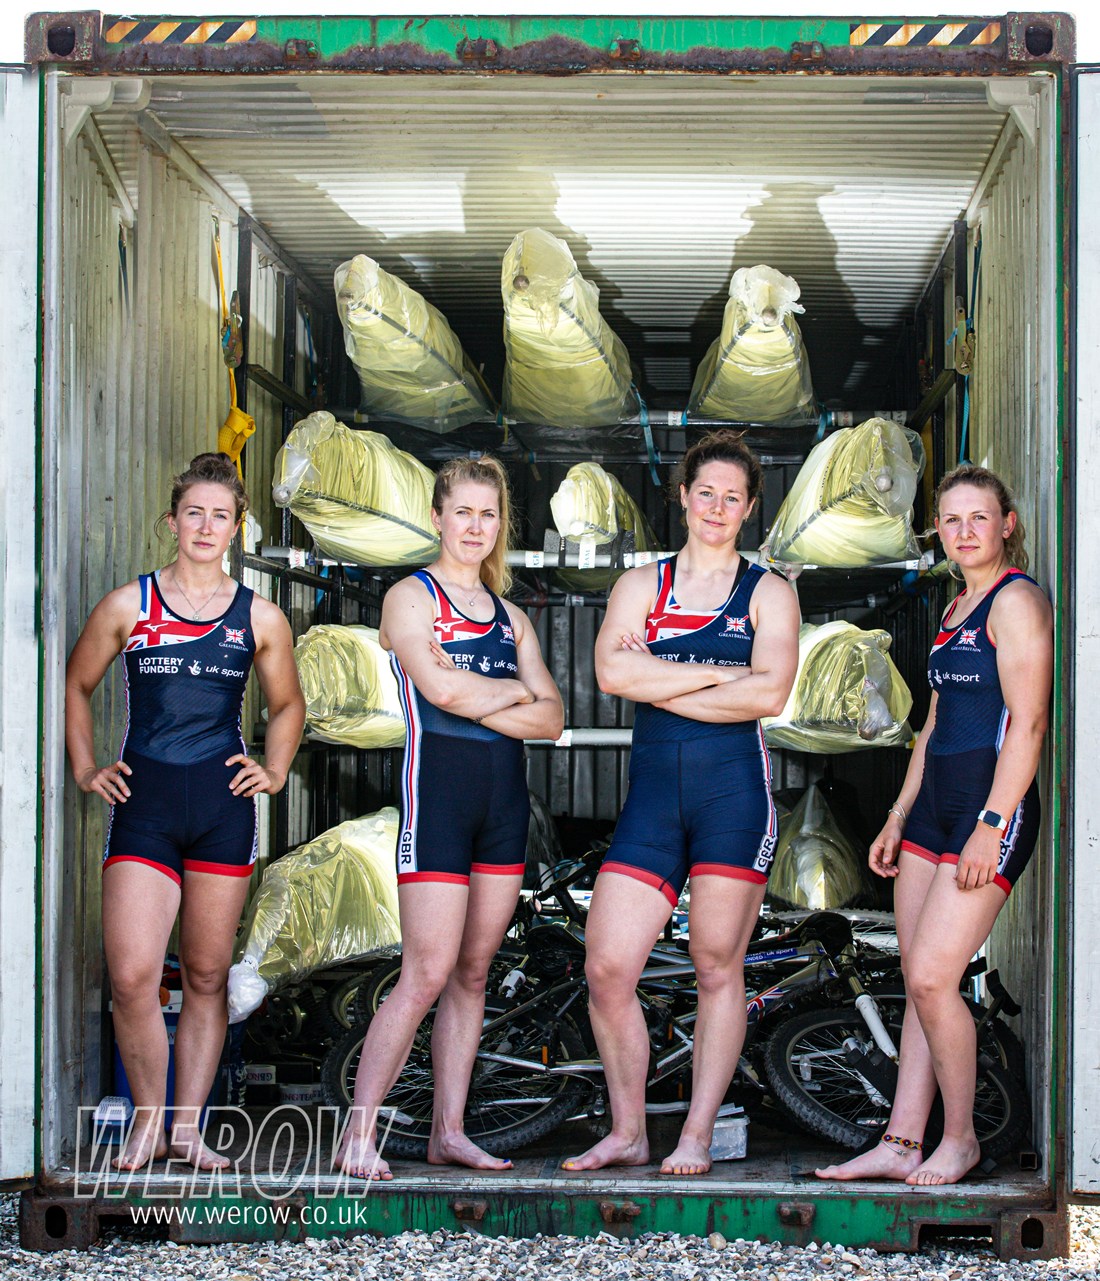 The GBR women's quadruple scull crew of Jess Leyden (Leander Club / Todmorden) Melissa Wilson (Cambridge Univ. Women's BC / Edinburgh) Mathilda Hodgkins-Byrne (Reading Univ. BC / Hereford) Charlotte Hodgkins-Byrne (University of London BC / Hereford) Coached by Jane Hall